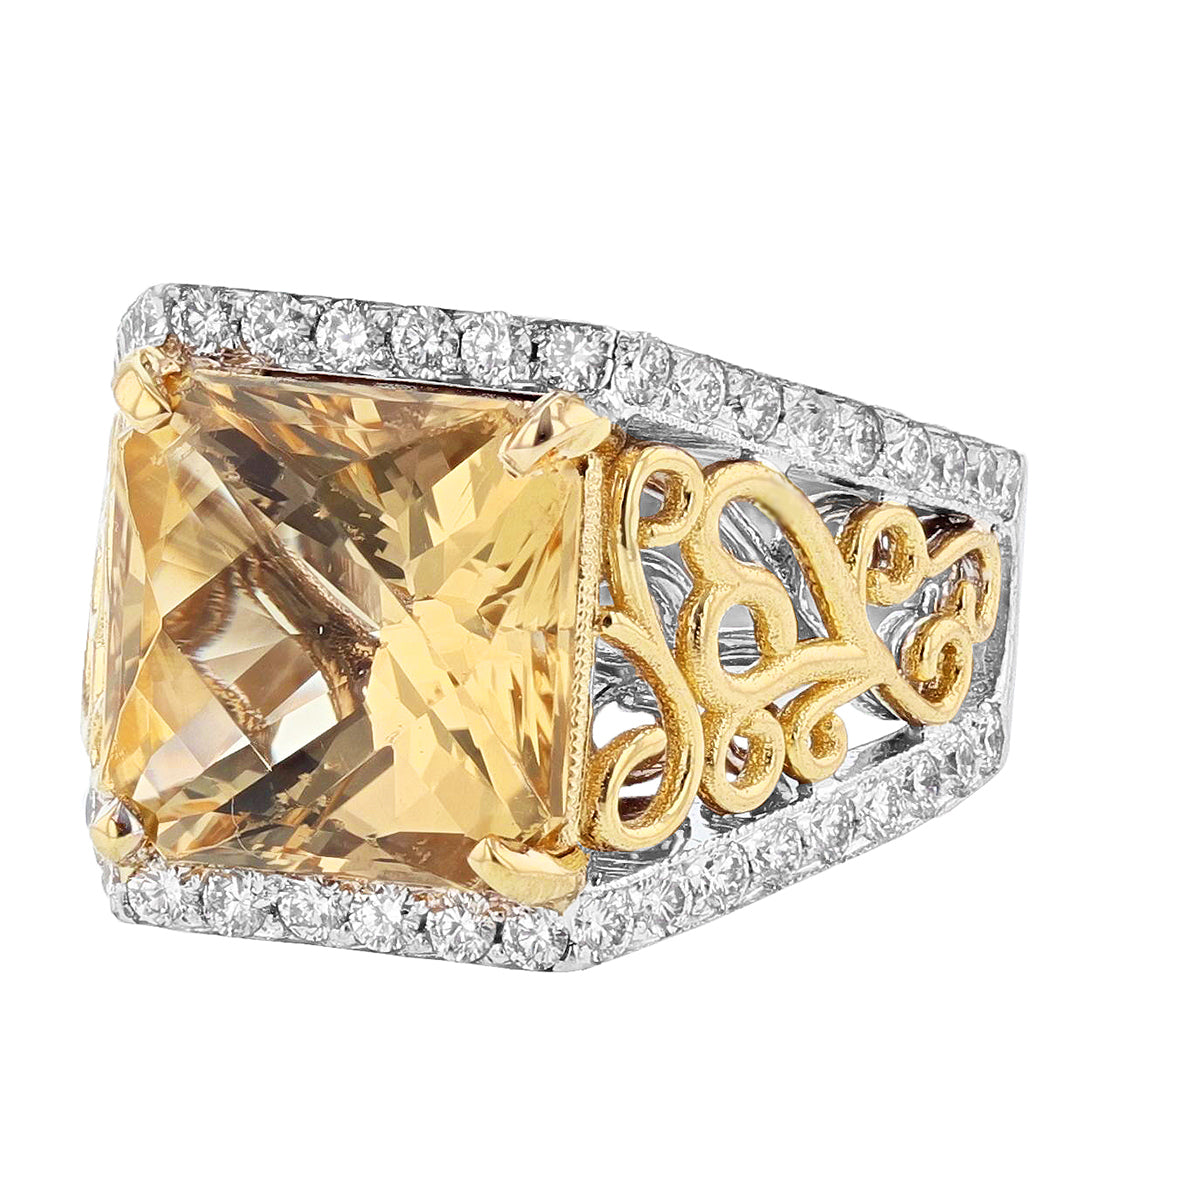 14K White and Yellow Gold Scapolite and Diamond Ring - Nazarelle